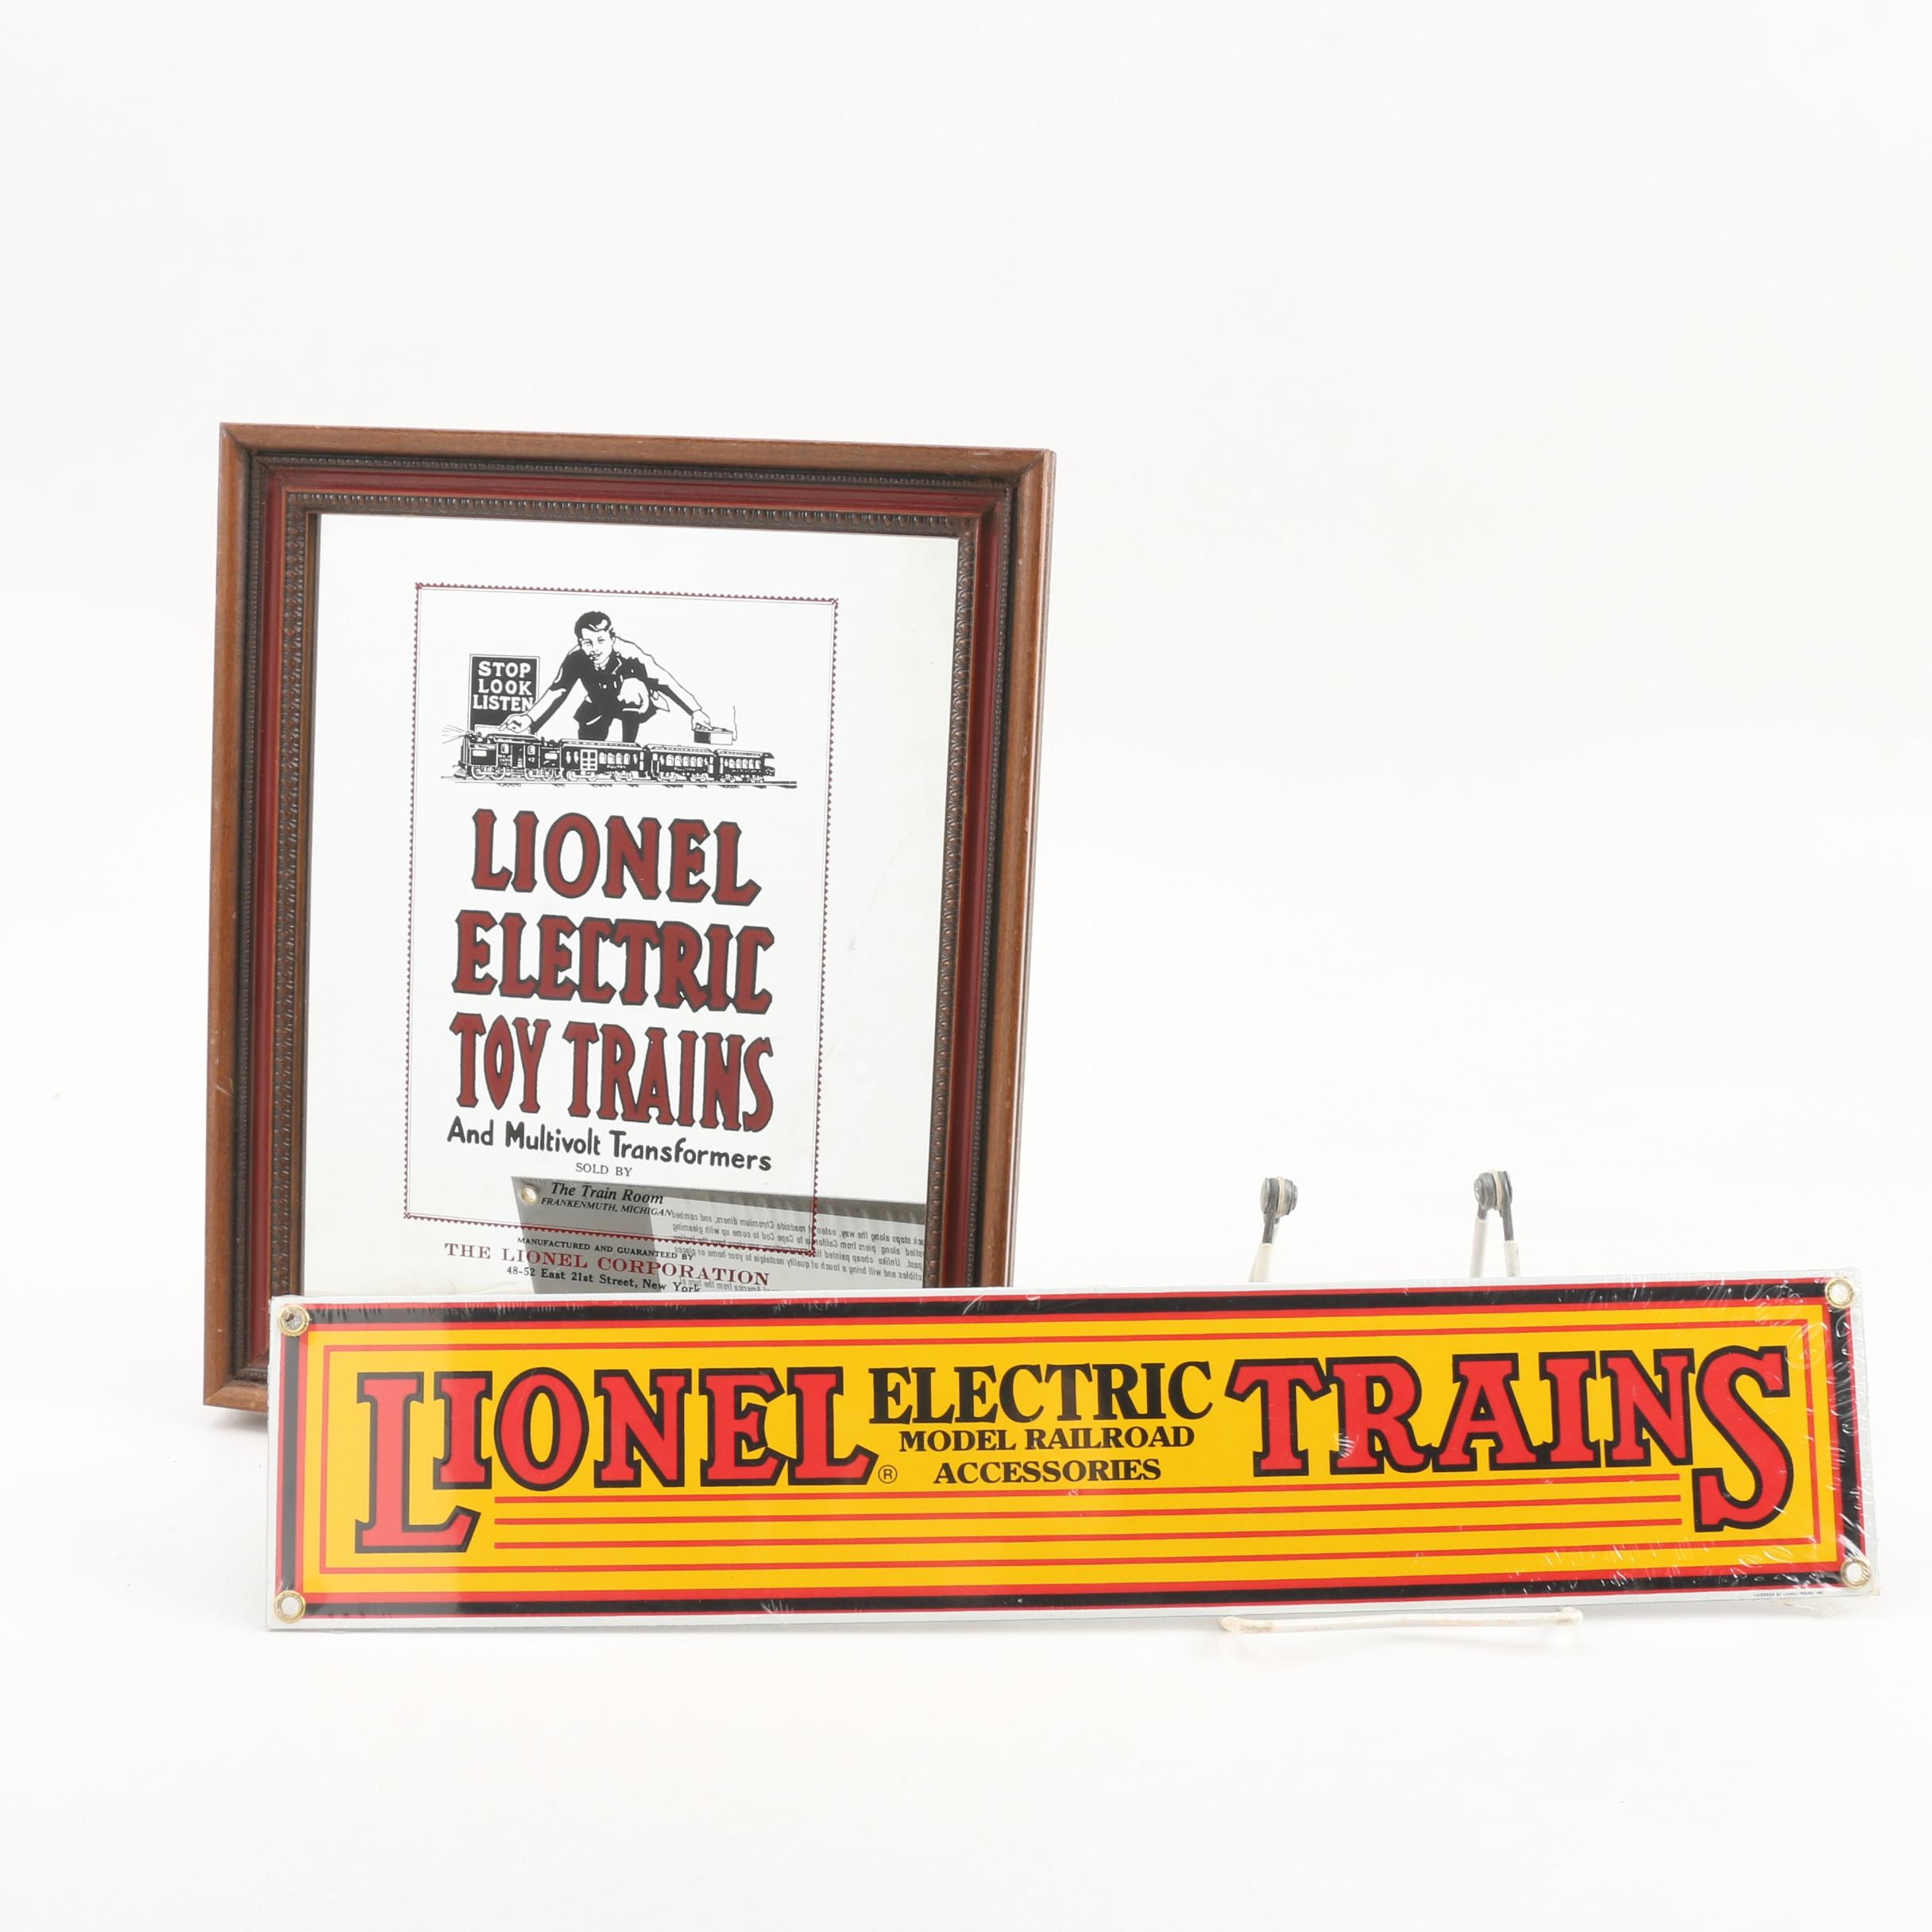 Lionel Model Railroad Advertising Sign and Mirror, Late 20th Century